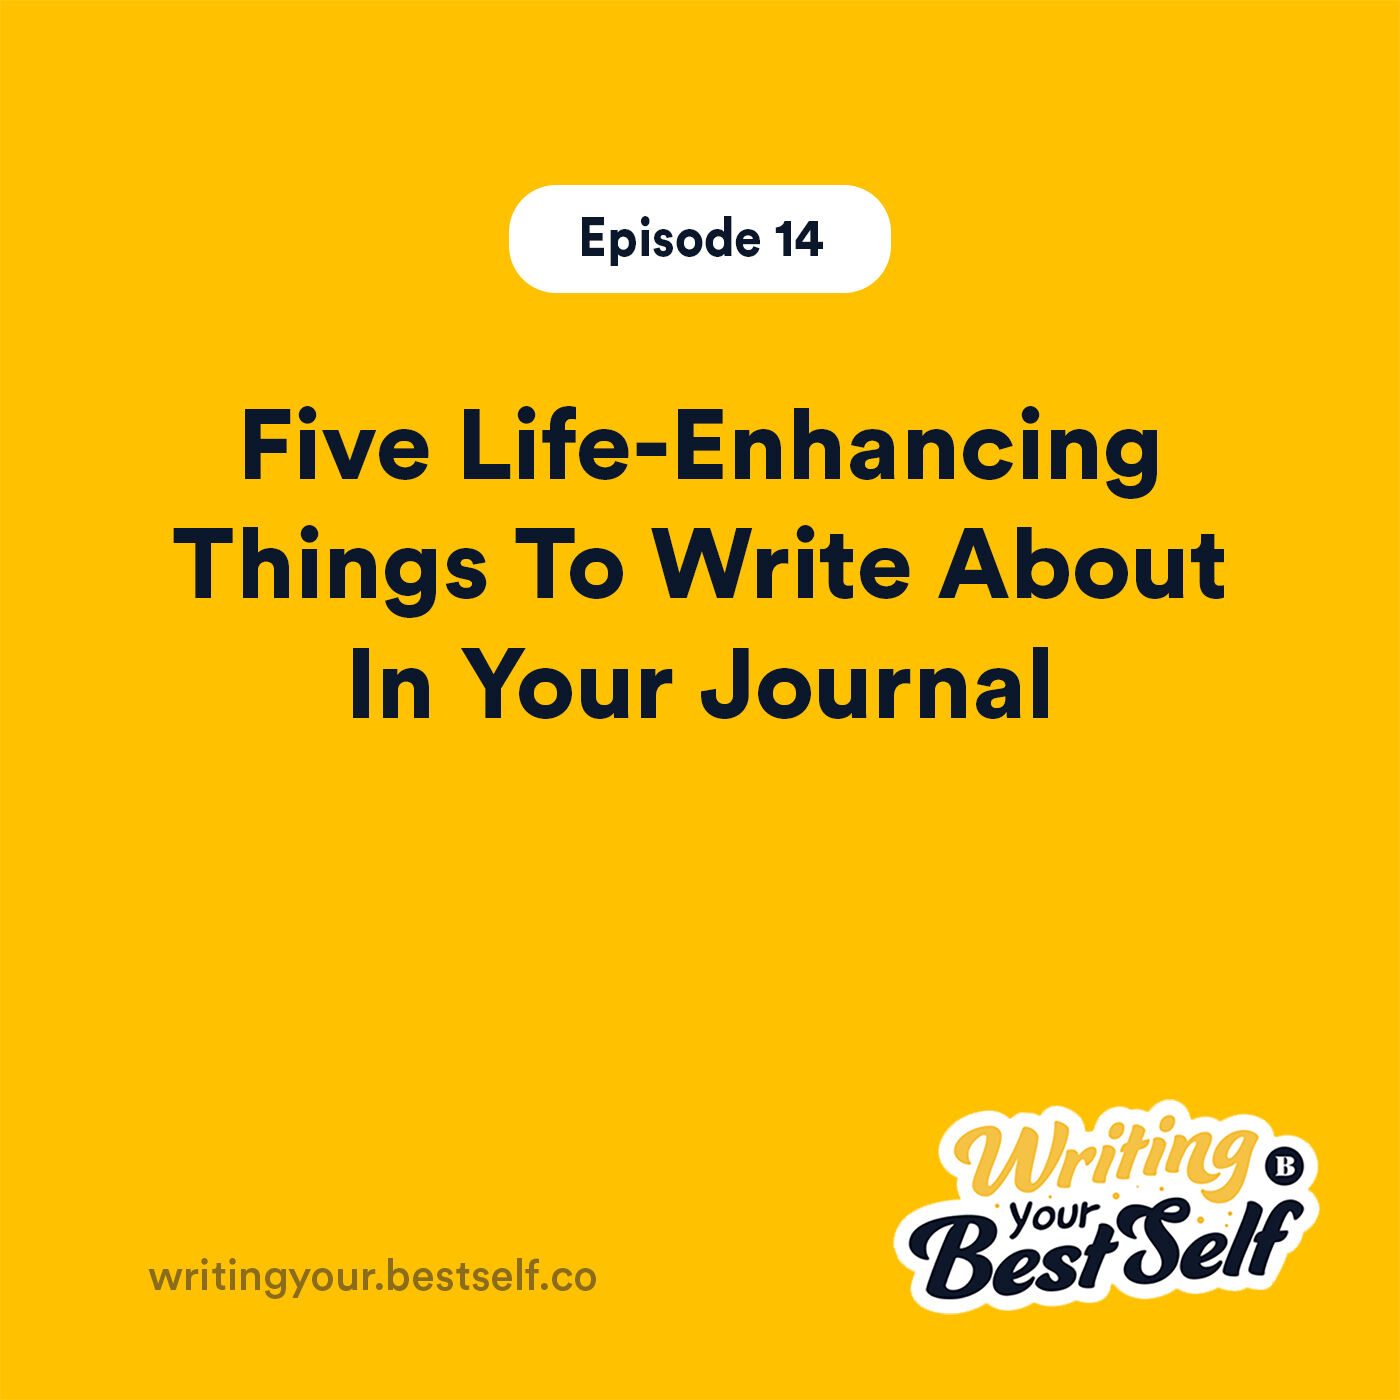 Five Life-Enhancing Things To Write About In Your Journal